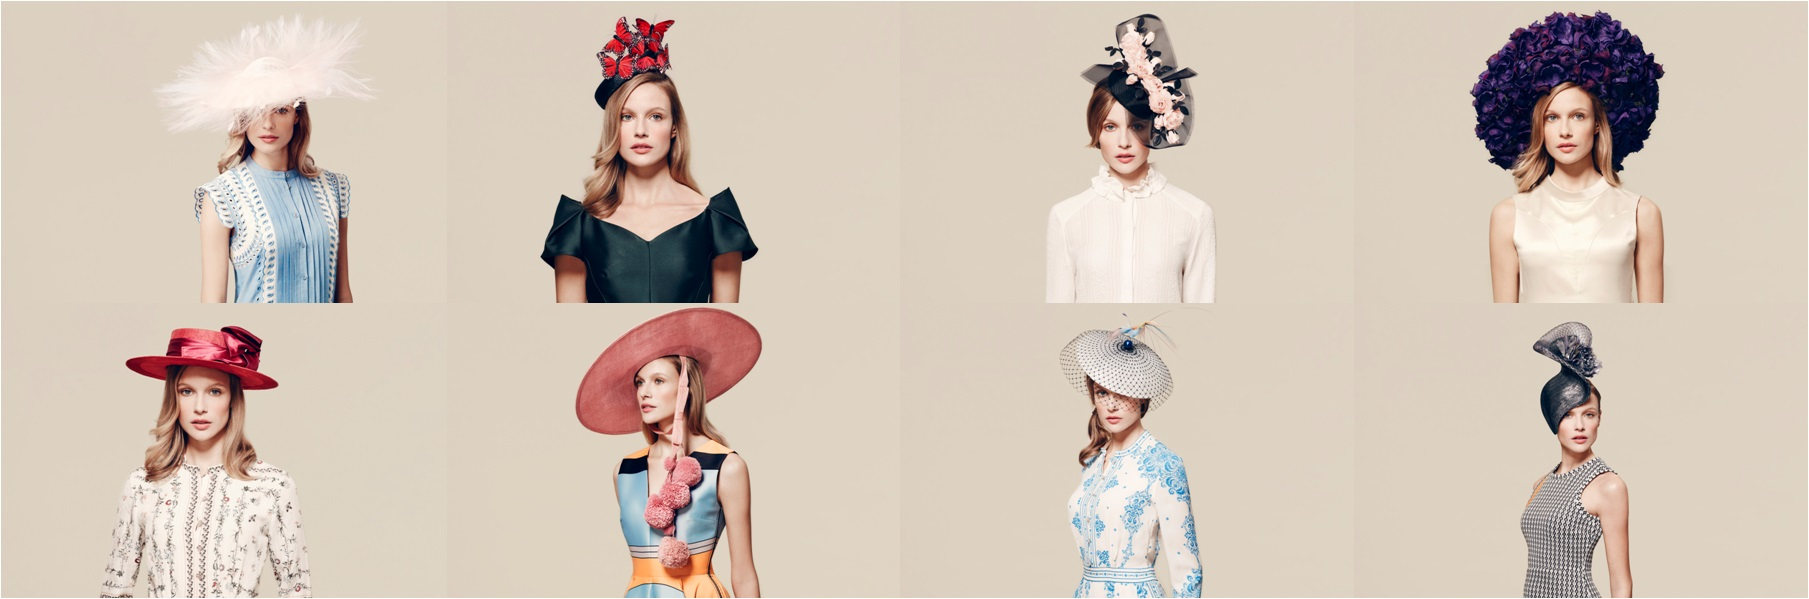 Find more info`s about the Millinery Collective here: www.fenwick.co.uk